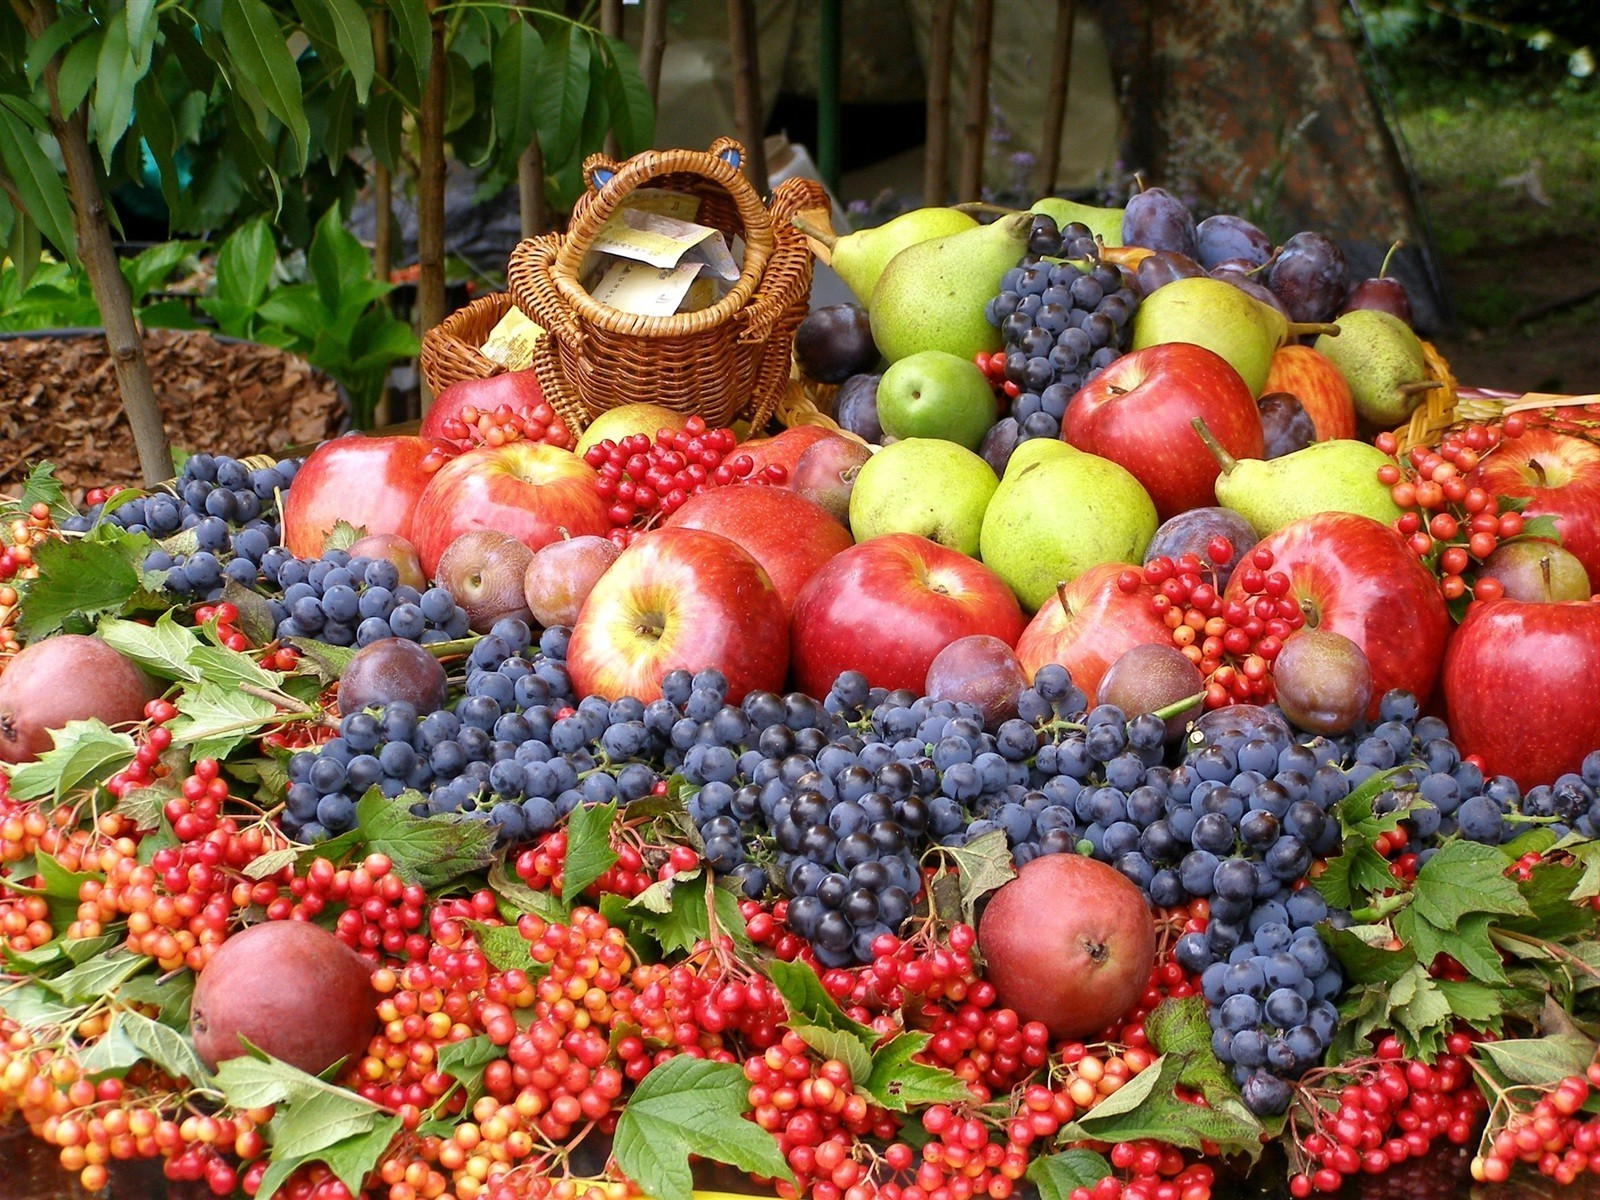 fruit grow food market agriculture pasture juicy abundance berry apple healthy confection fall leaf garden basket nature